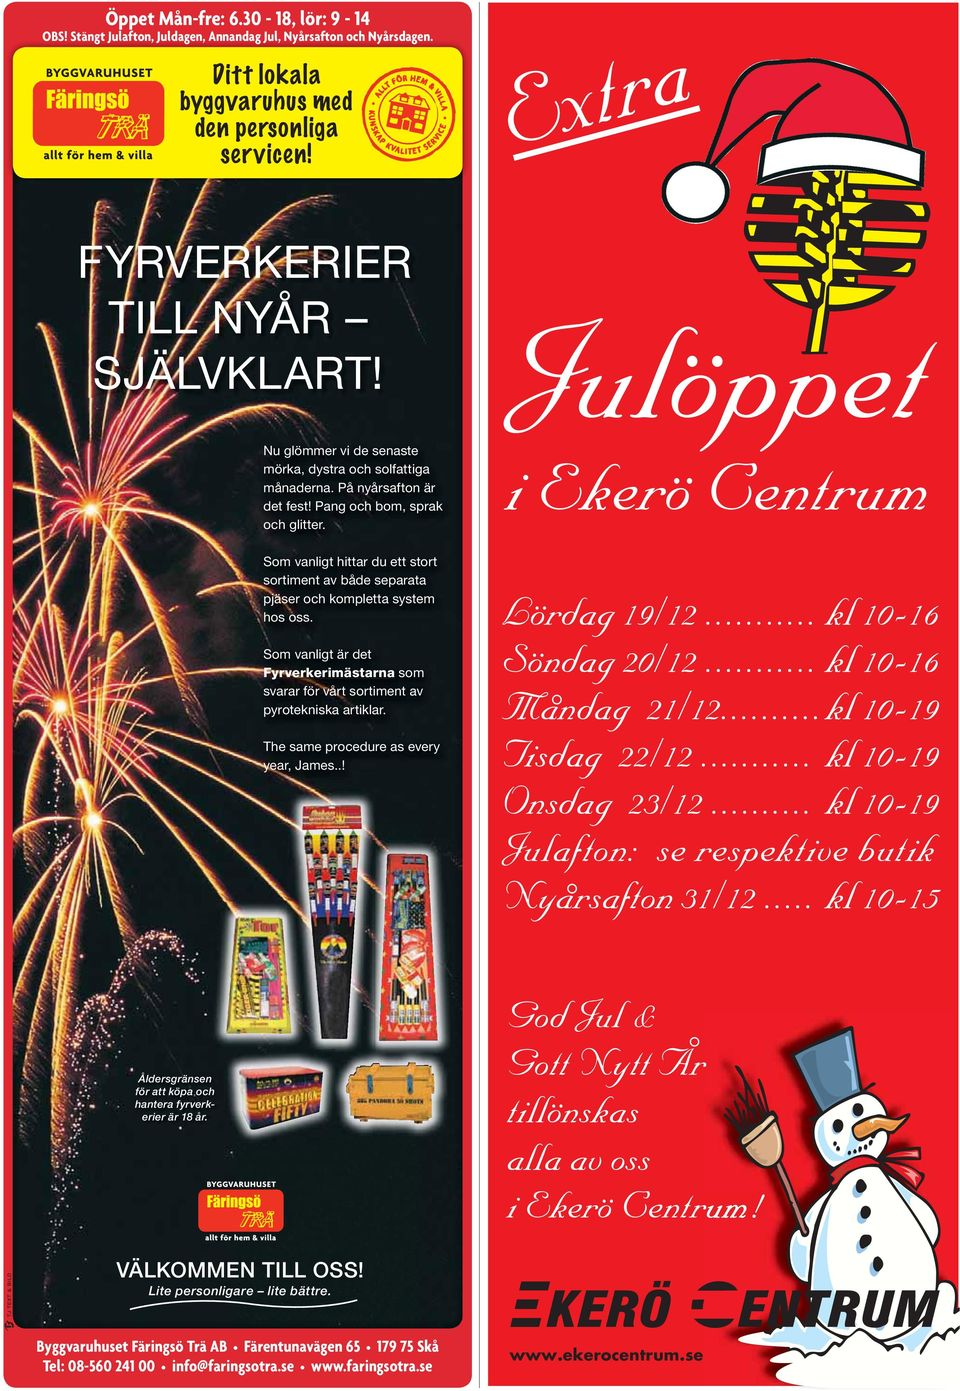 The same procedure as every year, James..! Julöppet i Ekerö Centrum Lördag 19/12... kl 10-16 Söndag 20/12... kl 10-16 Måndag 21/12... kl 10-19 Tisdag 22/12... kl 10-19 Onsdag 23/12.